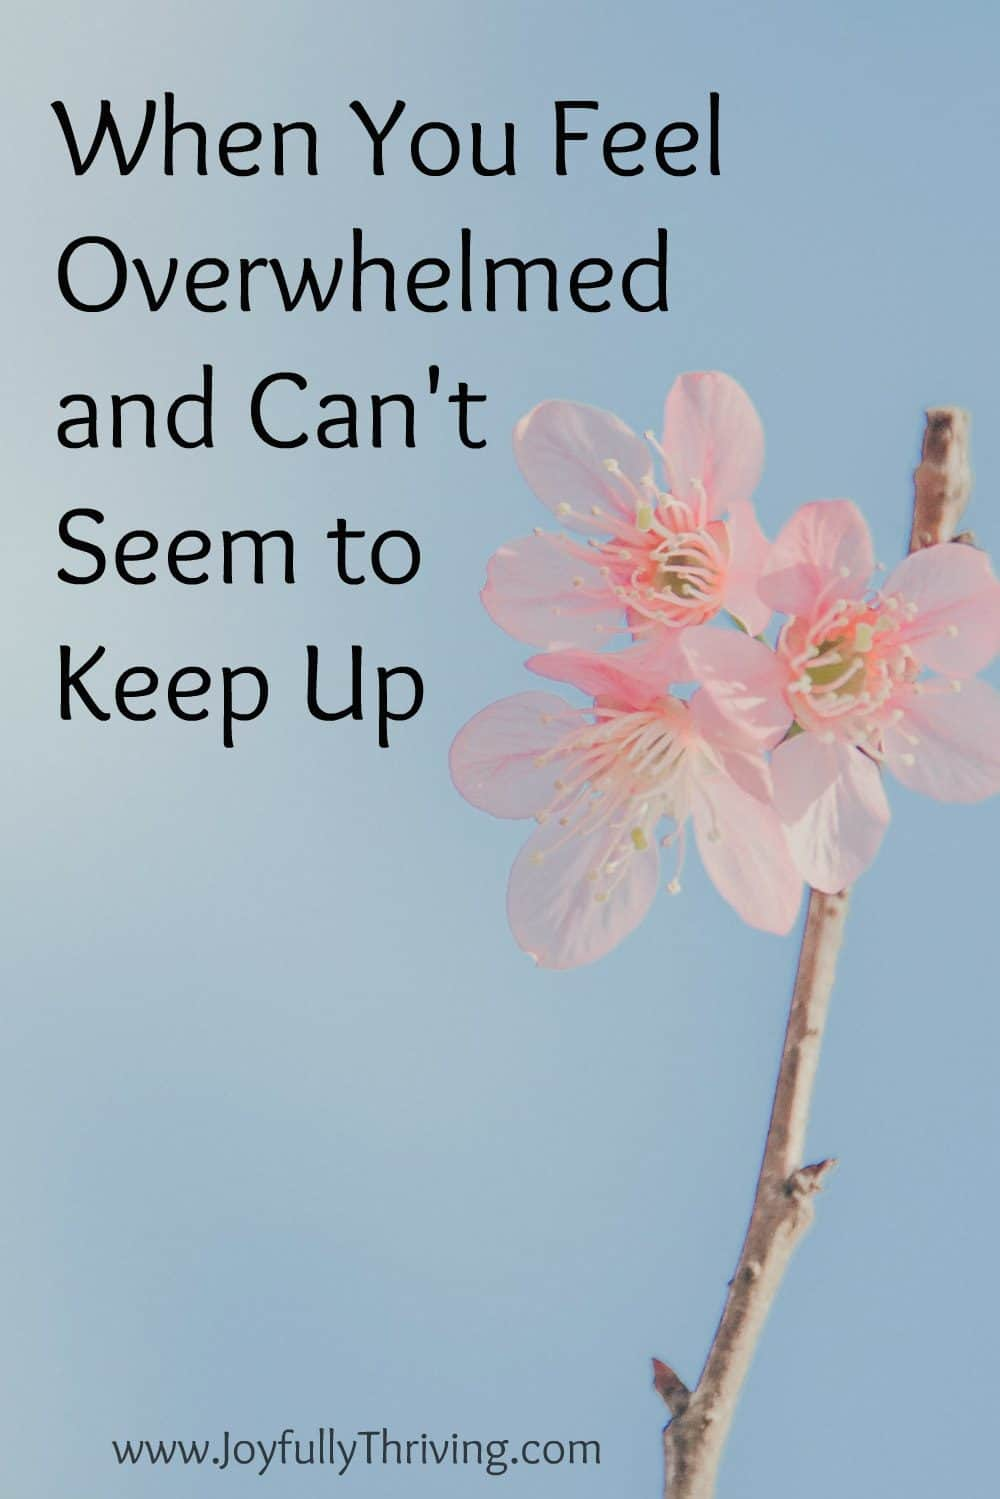 Encouragement for those days when you feel overwhelmed and can't seem to keep up with life around you.